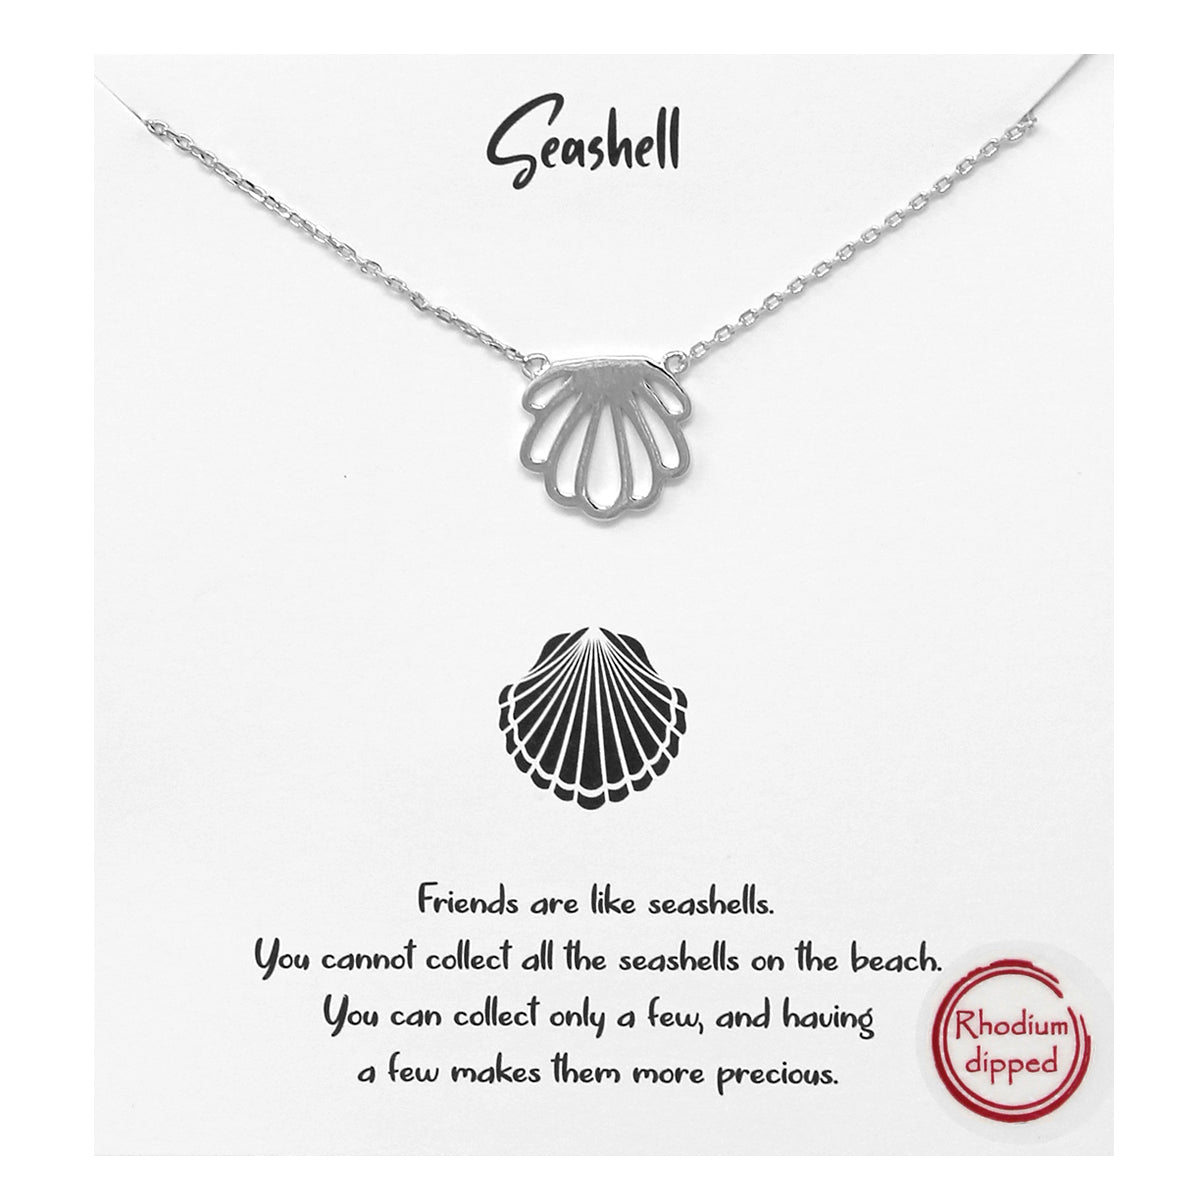 Tell Your Story: Seashell Metal Pendant Simple Chain Short Necklace